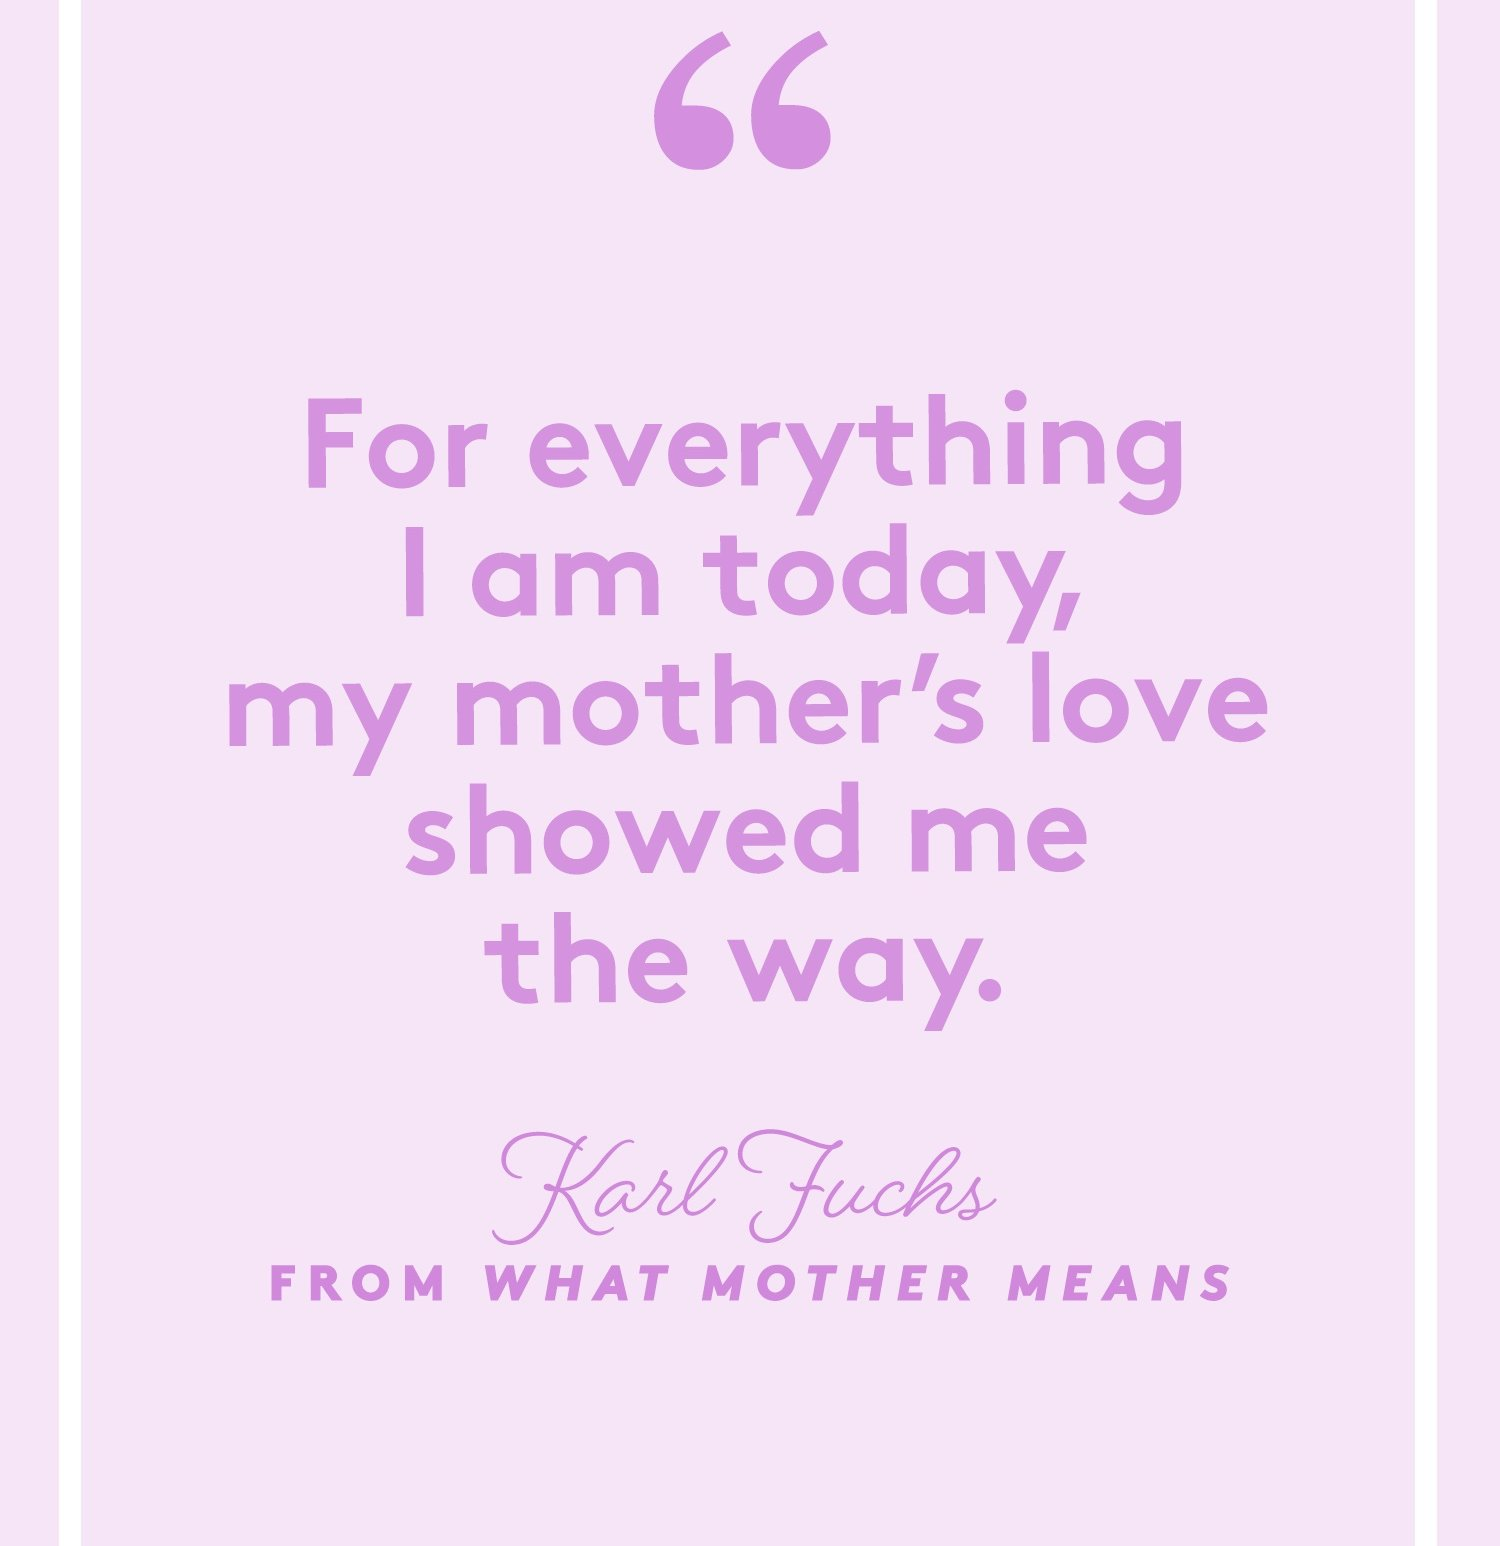 For Everything I Am Today My Mother S Love Showed Me The Way Karl Fuchs